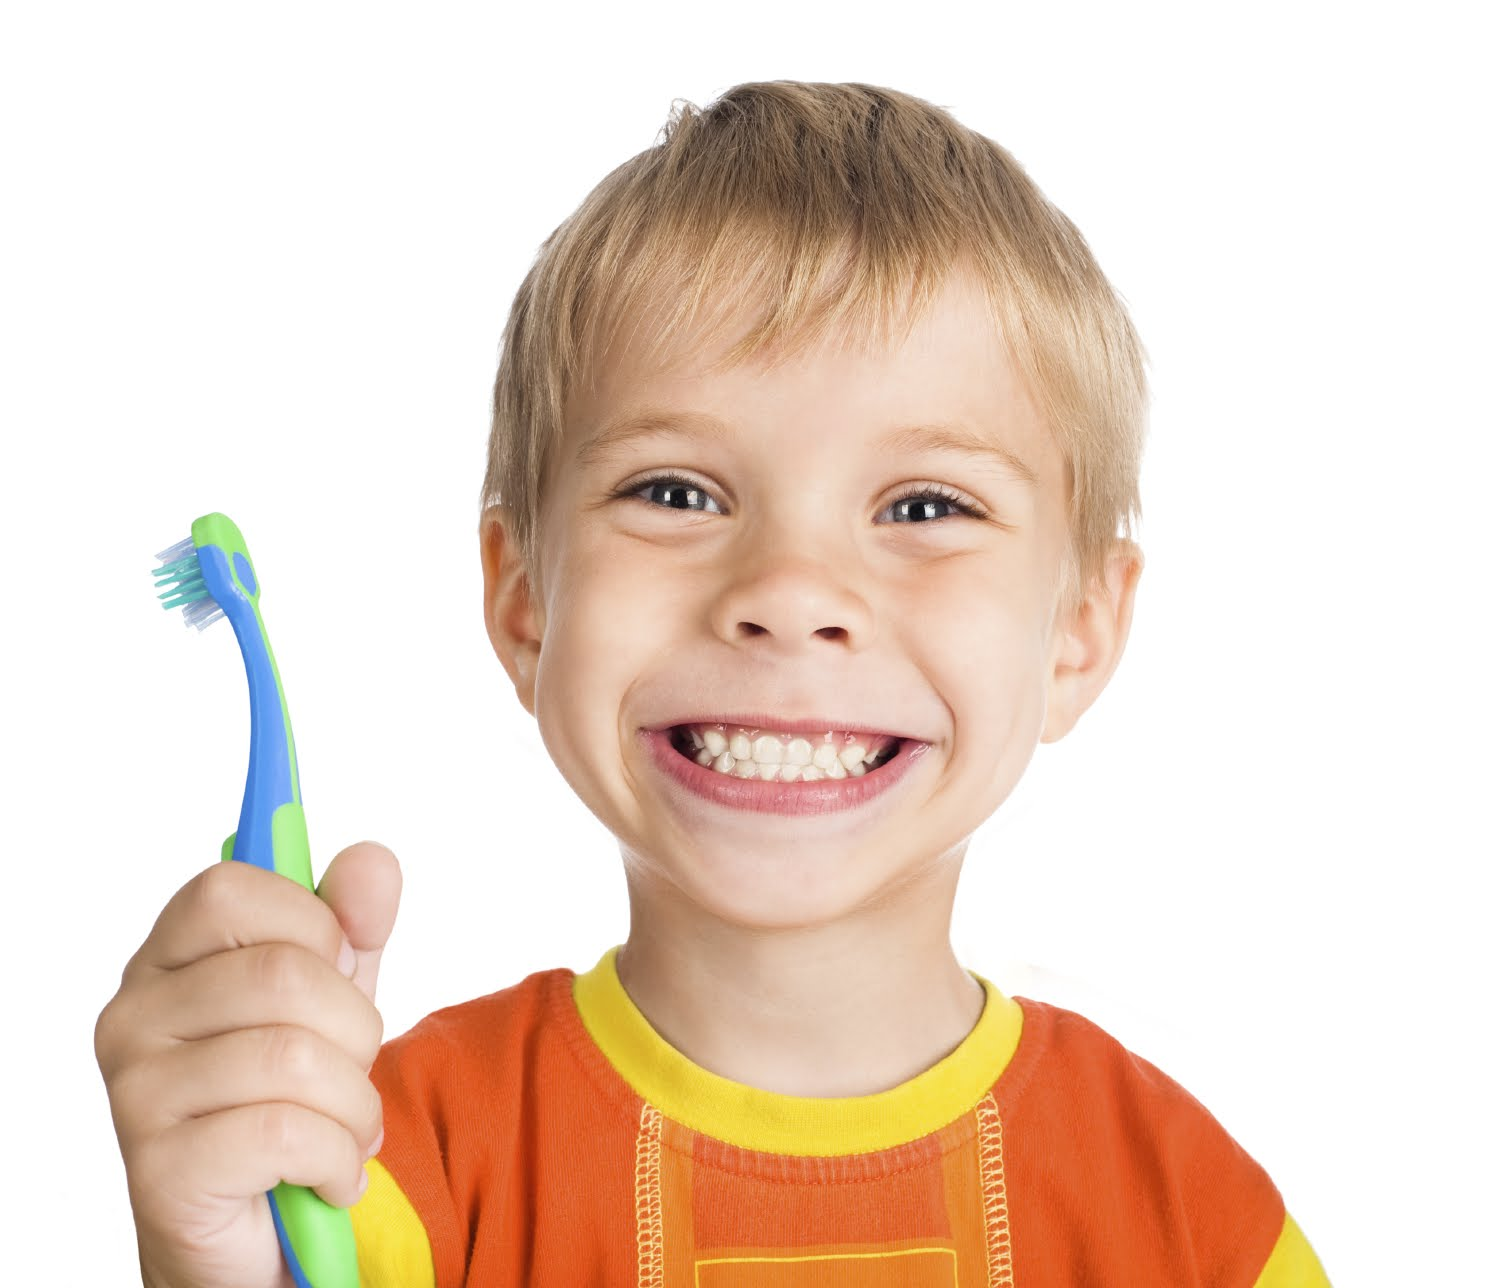 Family Dentist East Point GA 30344 | Little Ones Need Dental Care Too